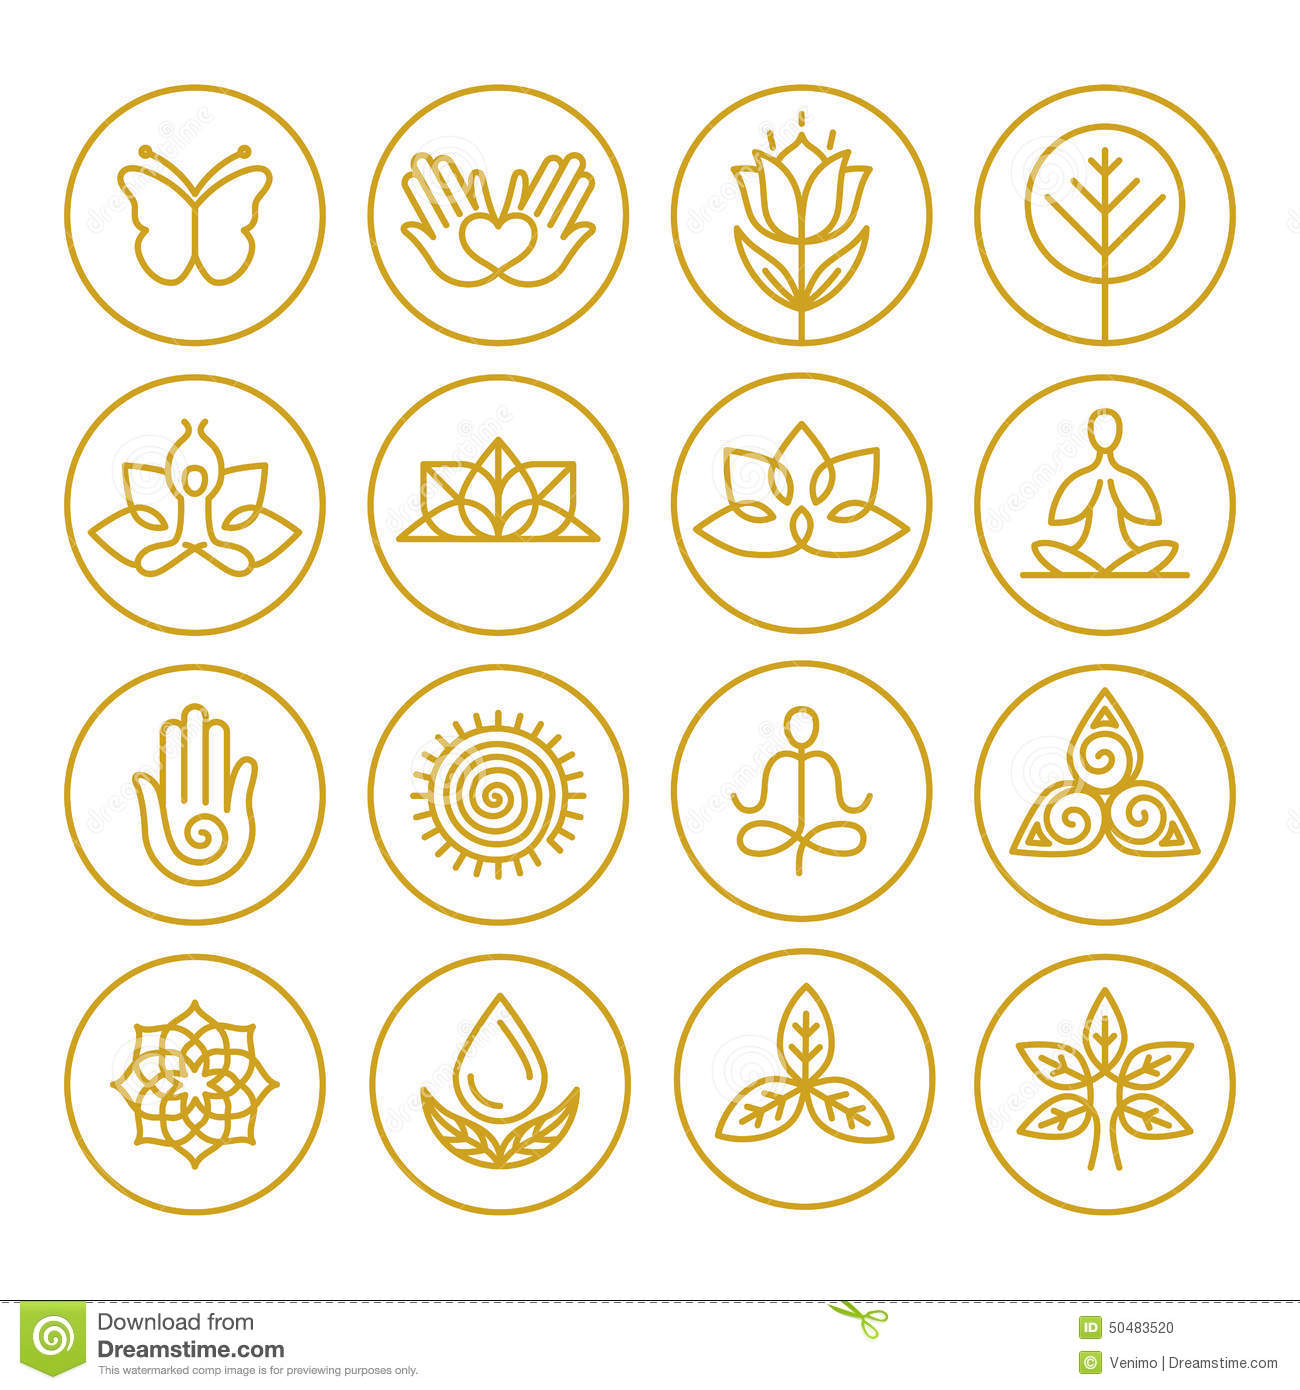 14 Yoga Icons Vector Images